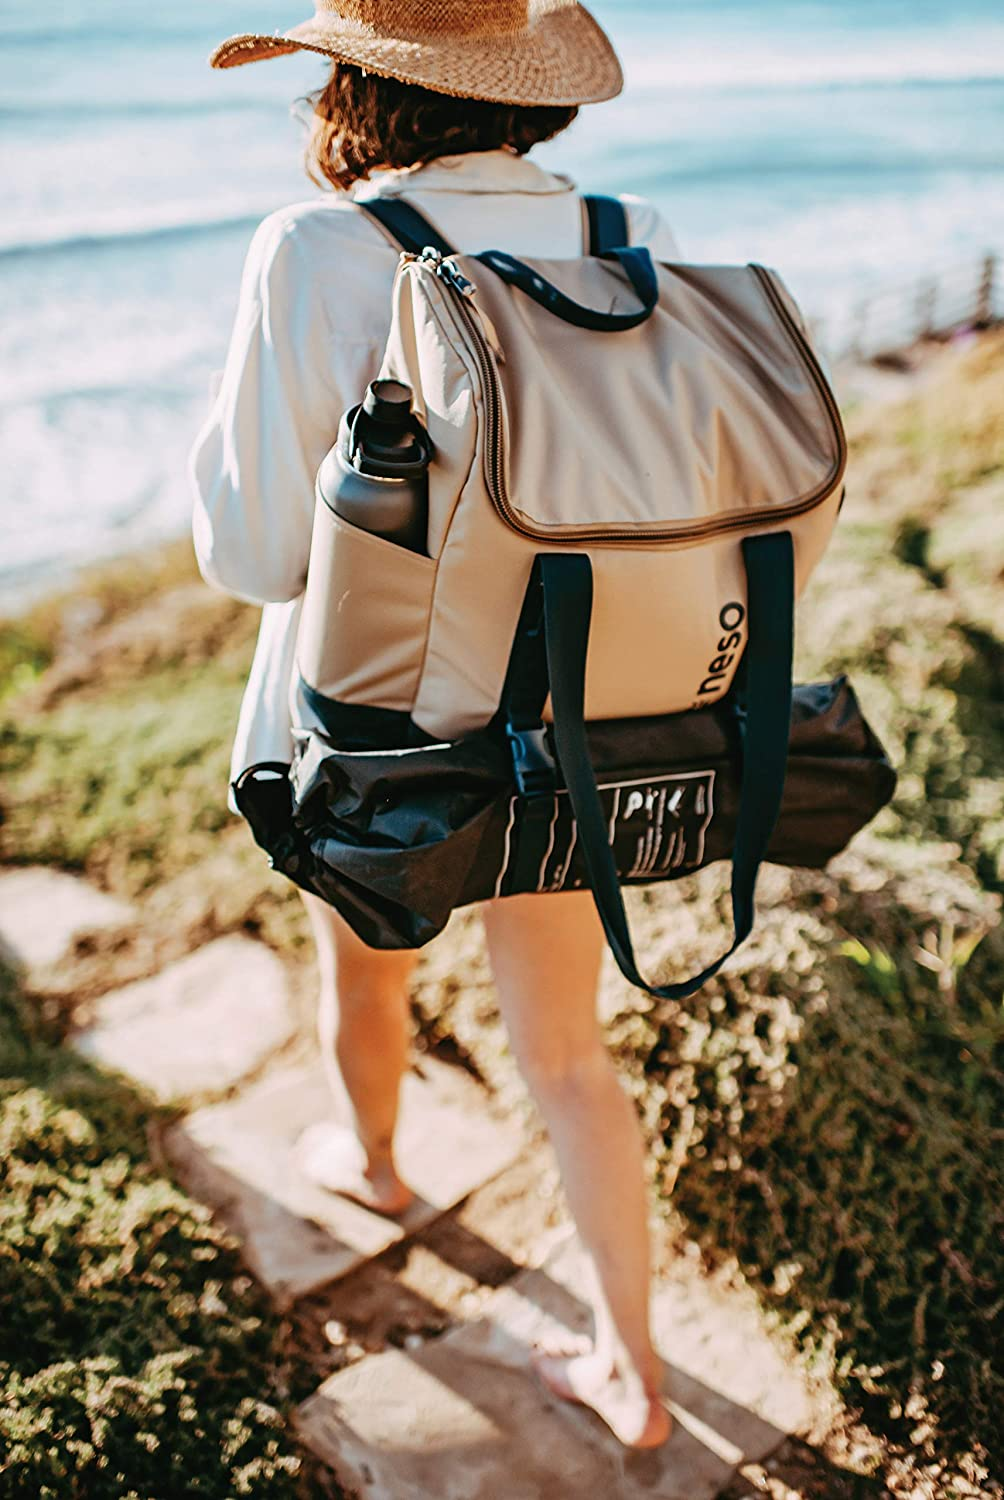 Neso Beach Adventure Tote, Waterproof Pocket, Carry as a Tote or Backpack(Tan)